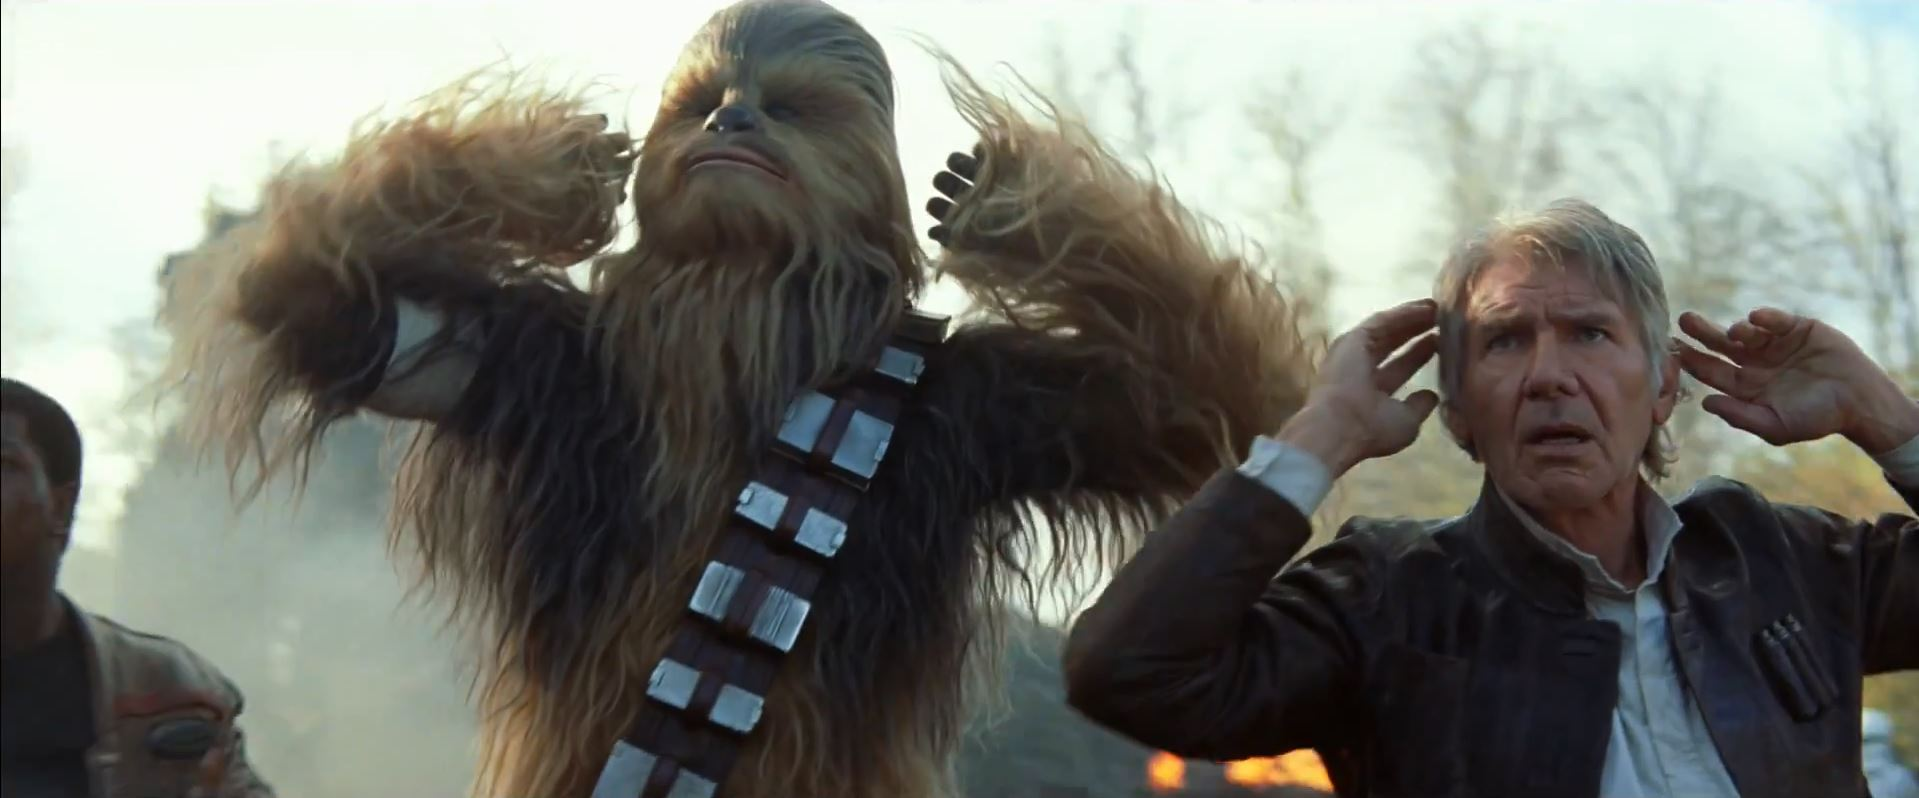 Chewbacca and Han Solo captured